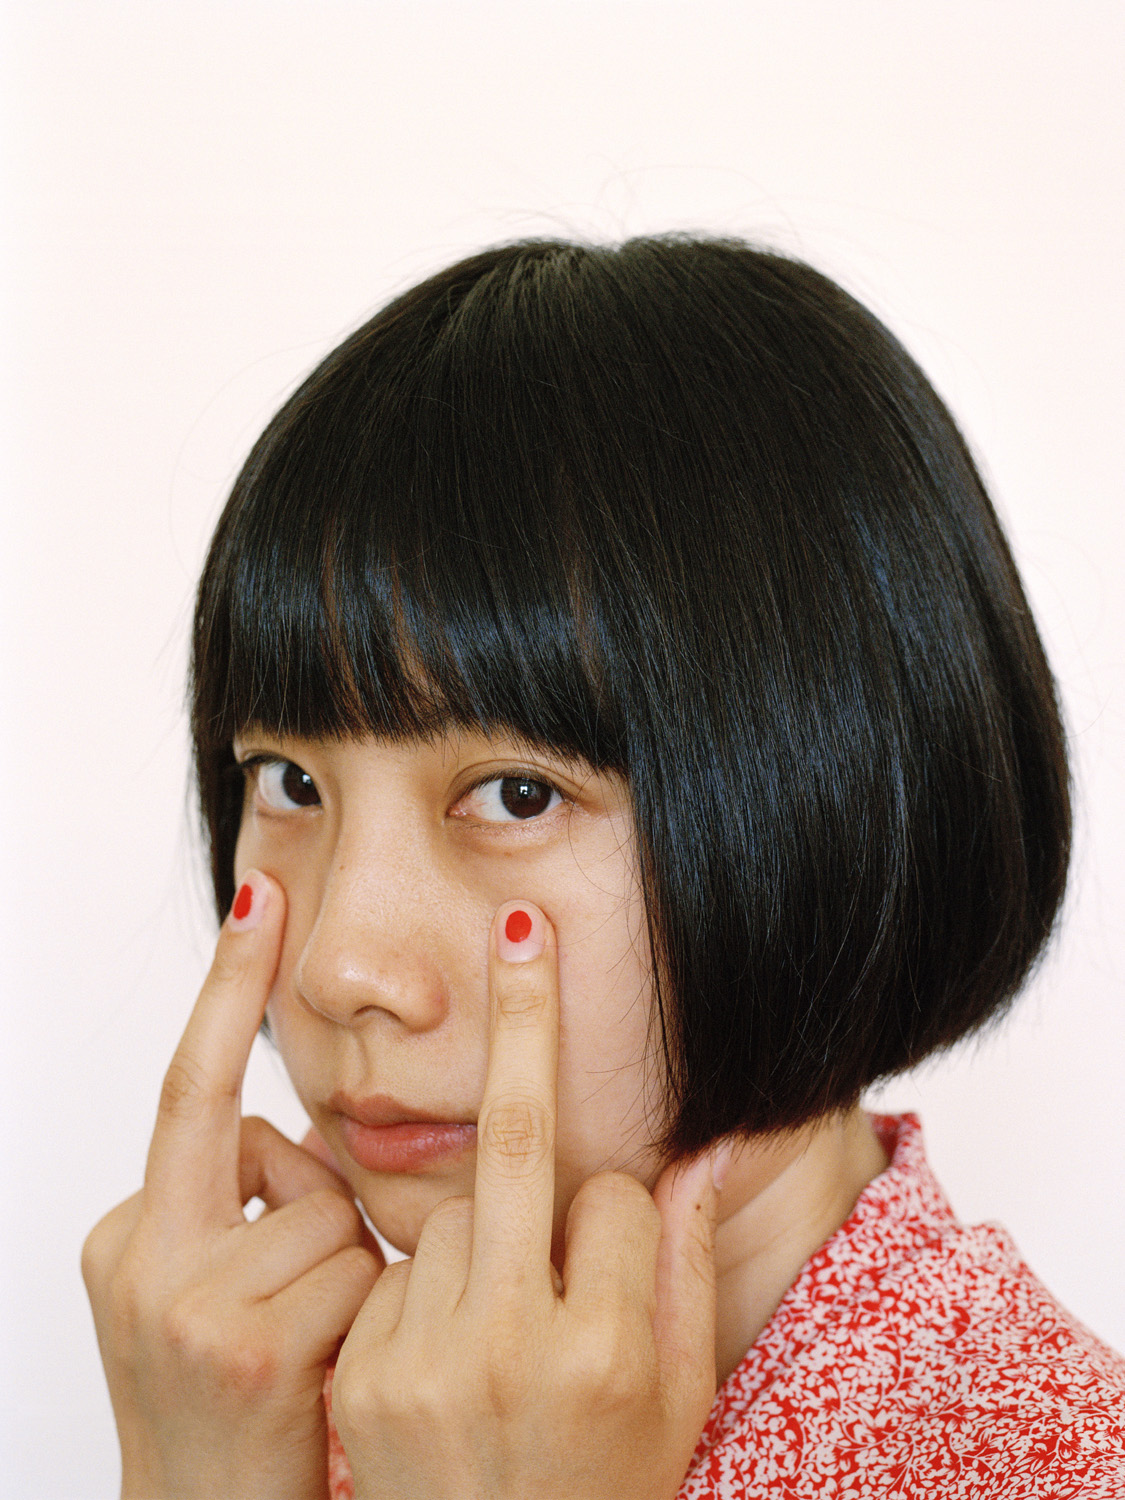 """""""I make art based on my feelings growing up as a girl in China, and on how I feel as a woman in today's world"""" - Pixy Liao, artist and winner of the Jimei x Arles - Madame Figaro Women Photographers Award"""